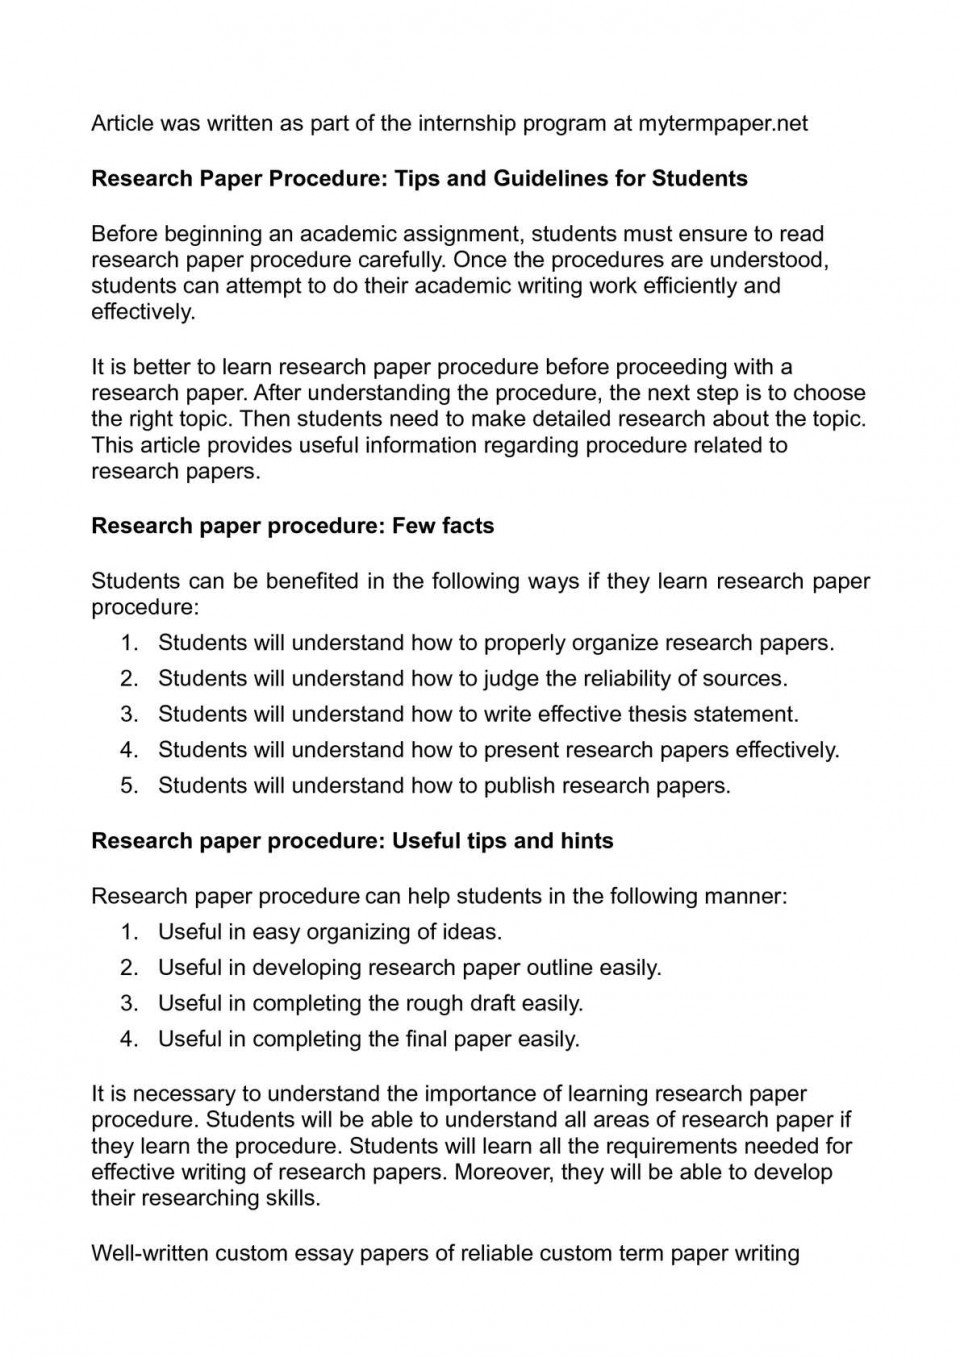 018 How To Do Research Paper Marvelous Review Write A Outline Owl Purdue Citing Sources 960